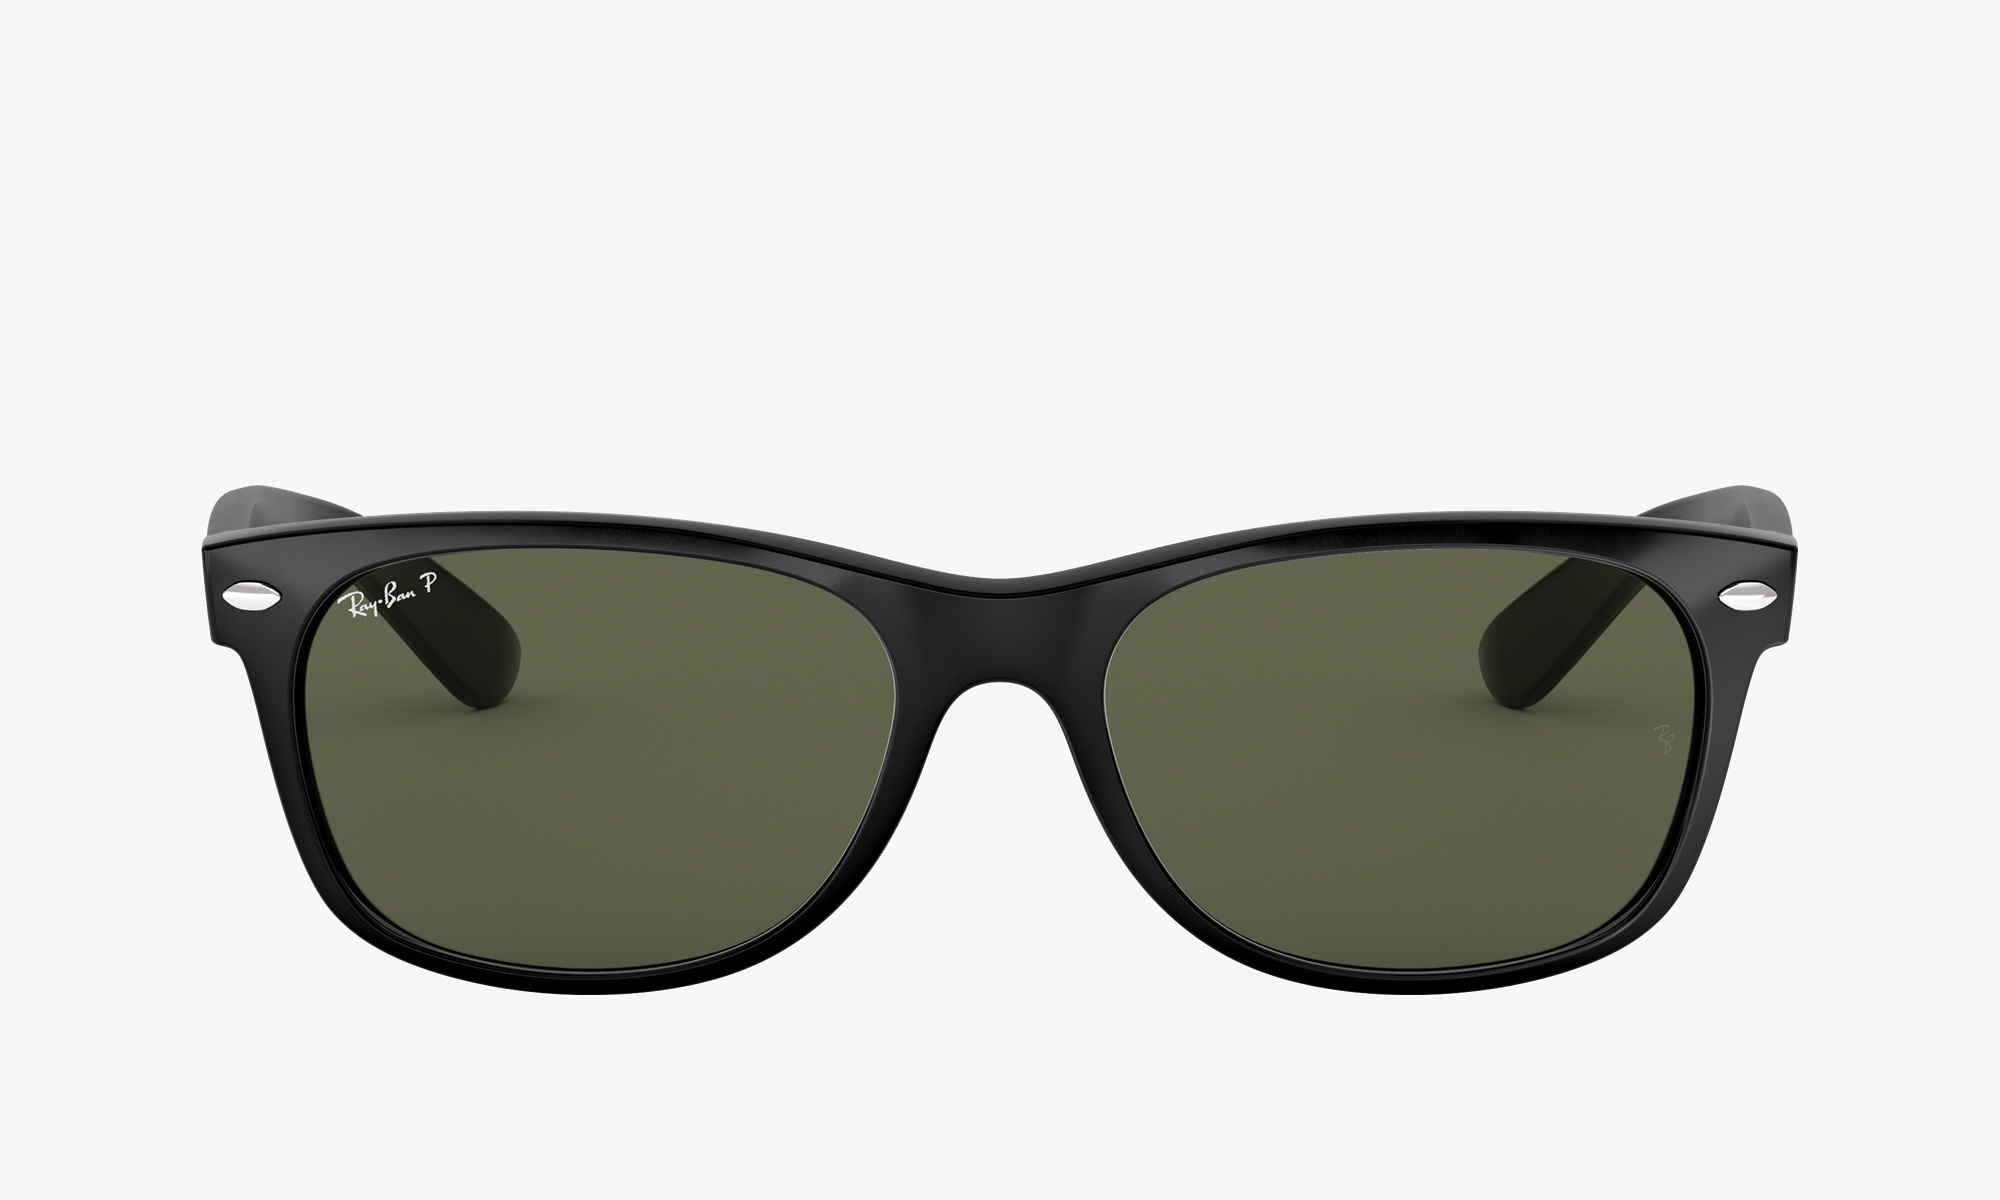 Image of Ray-Ban NEW WAYFARER color Black